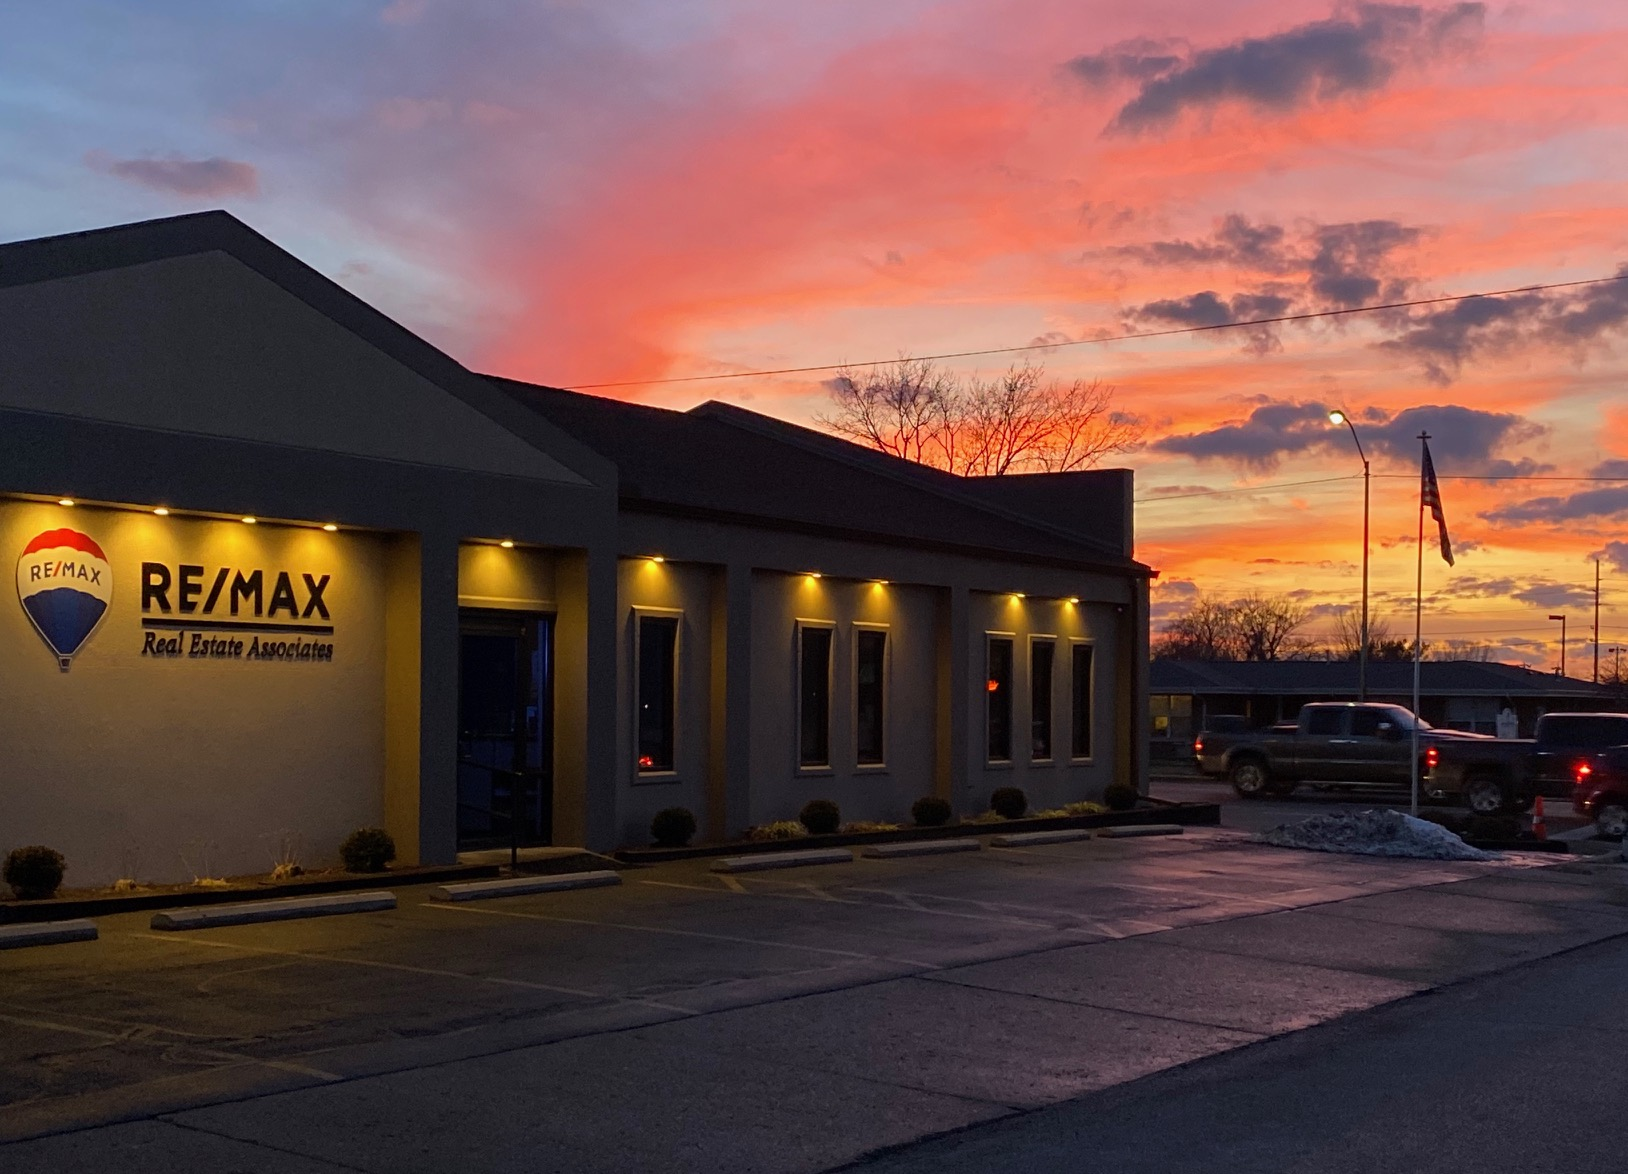 RE/MAX Real Estate Associates